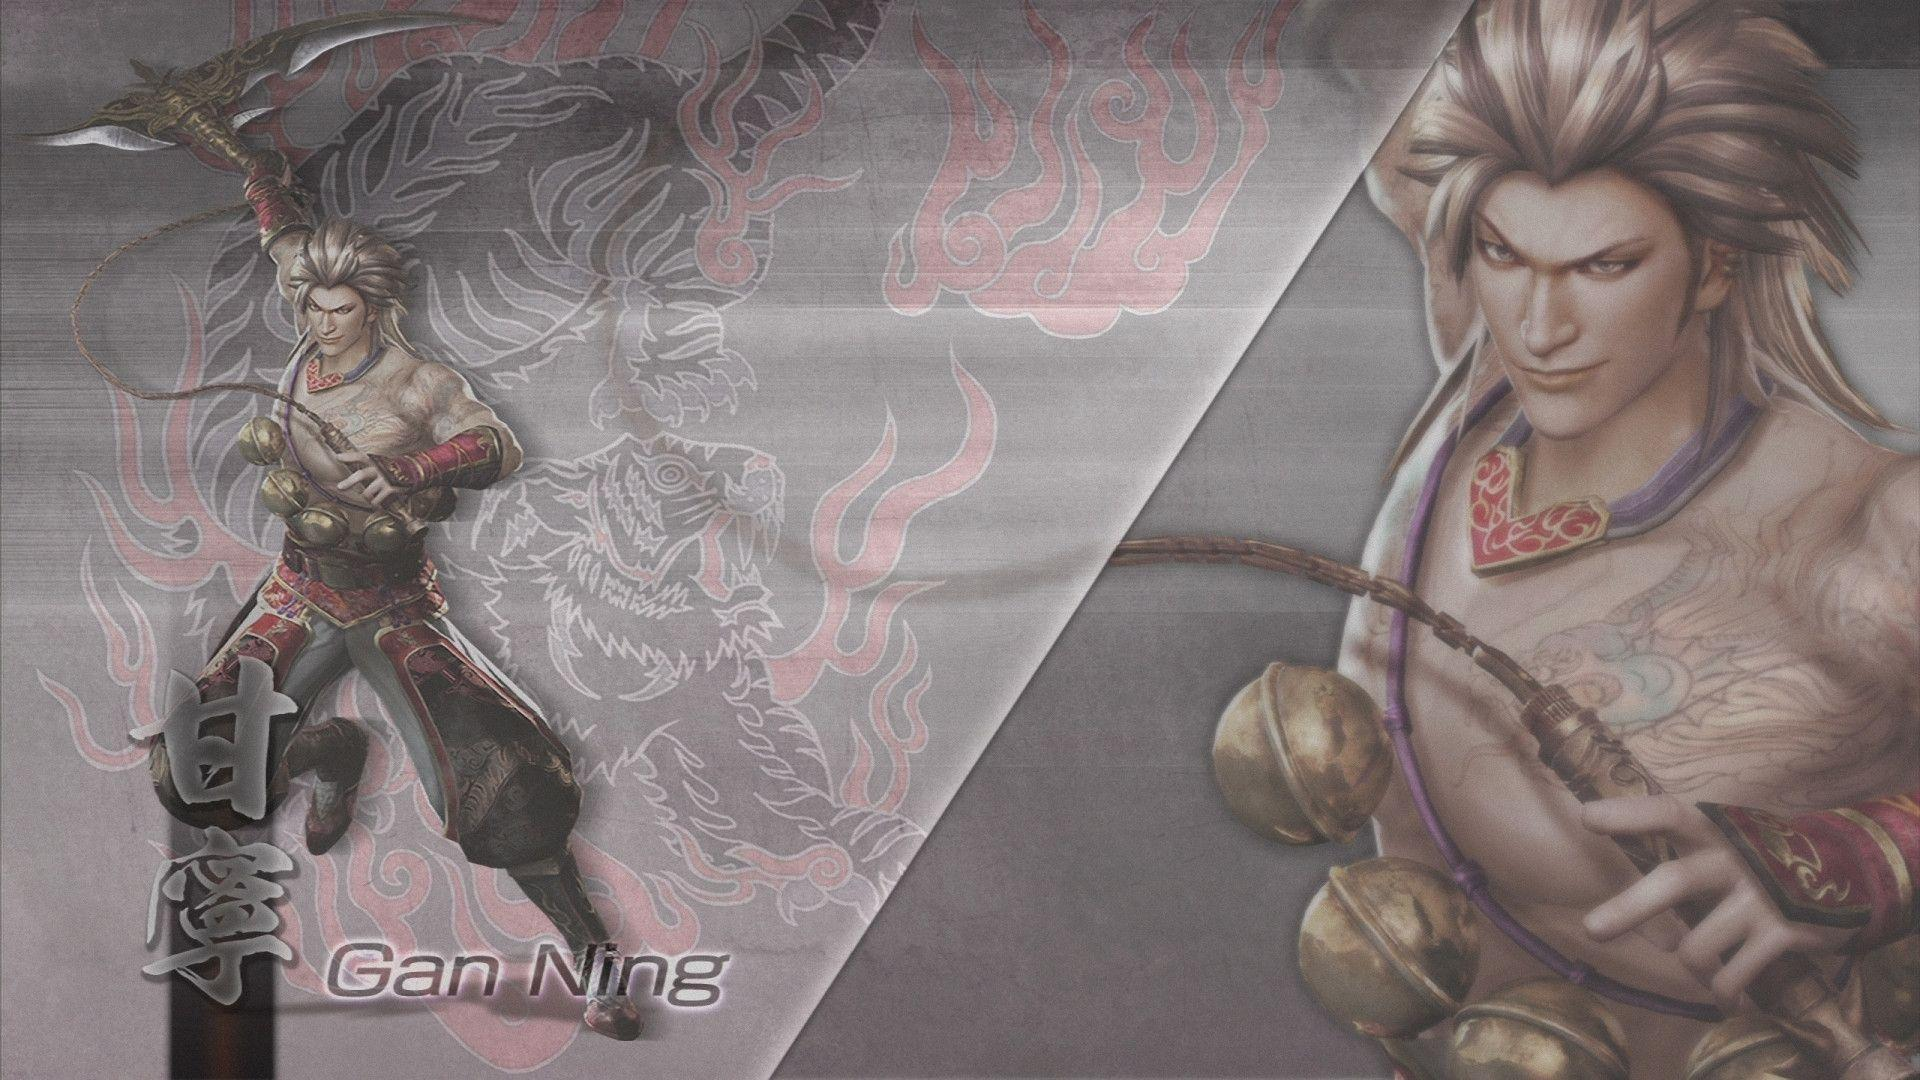 Dynasty Warriors 7 Wallpapers - Wallpaper Cave